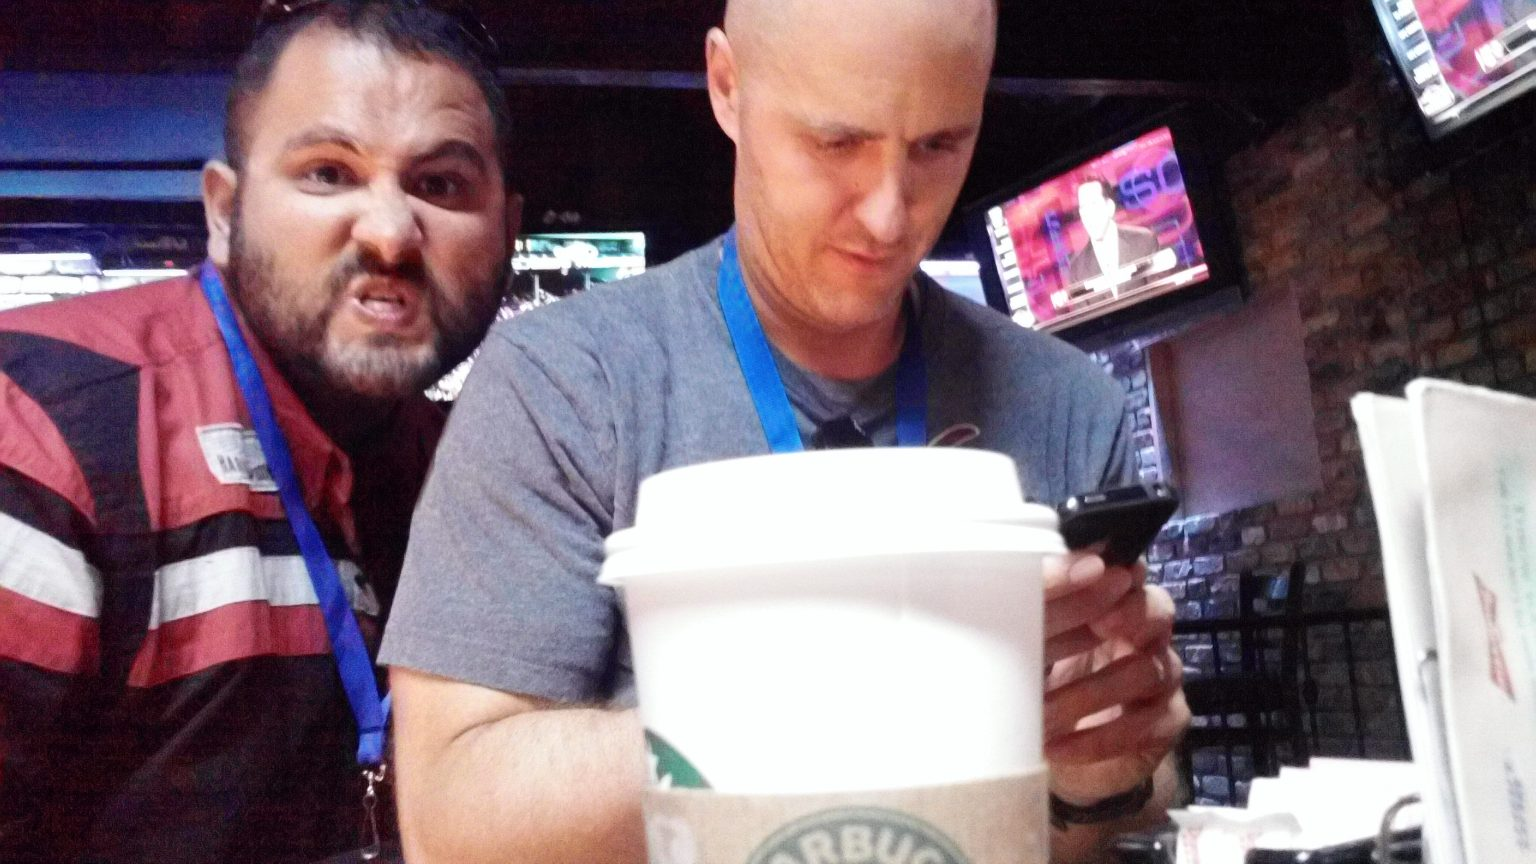 Artistic shot of Tony and Brian, with a Starbucks cup in the foreground